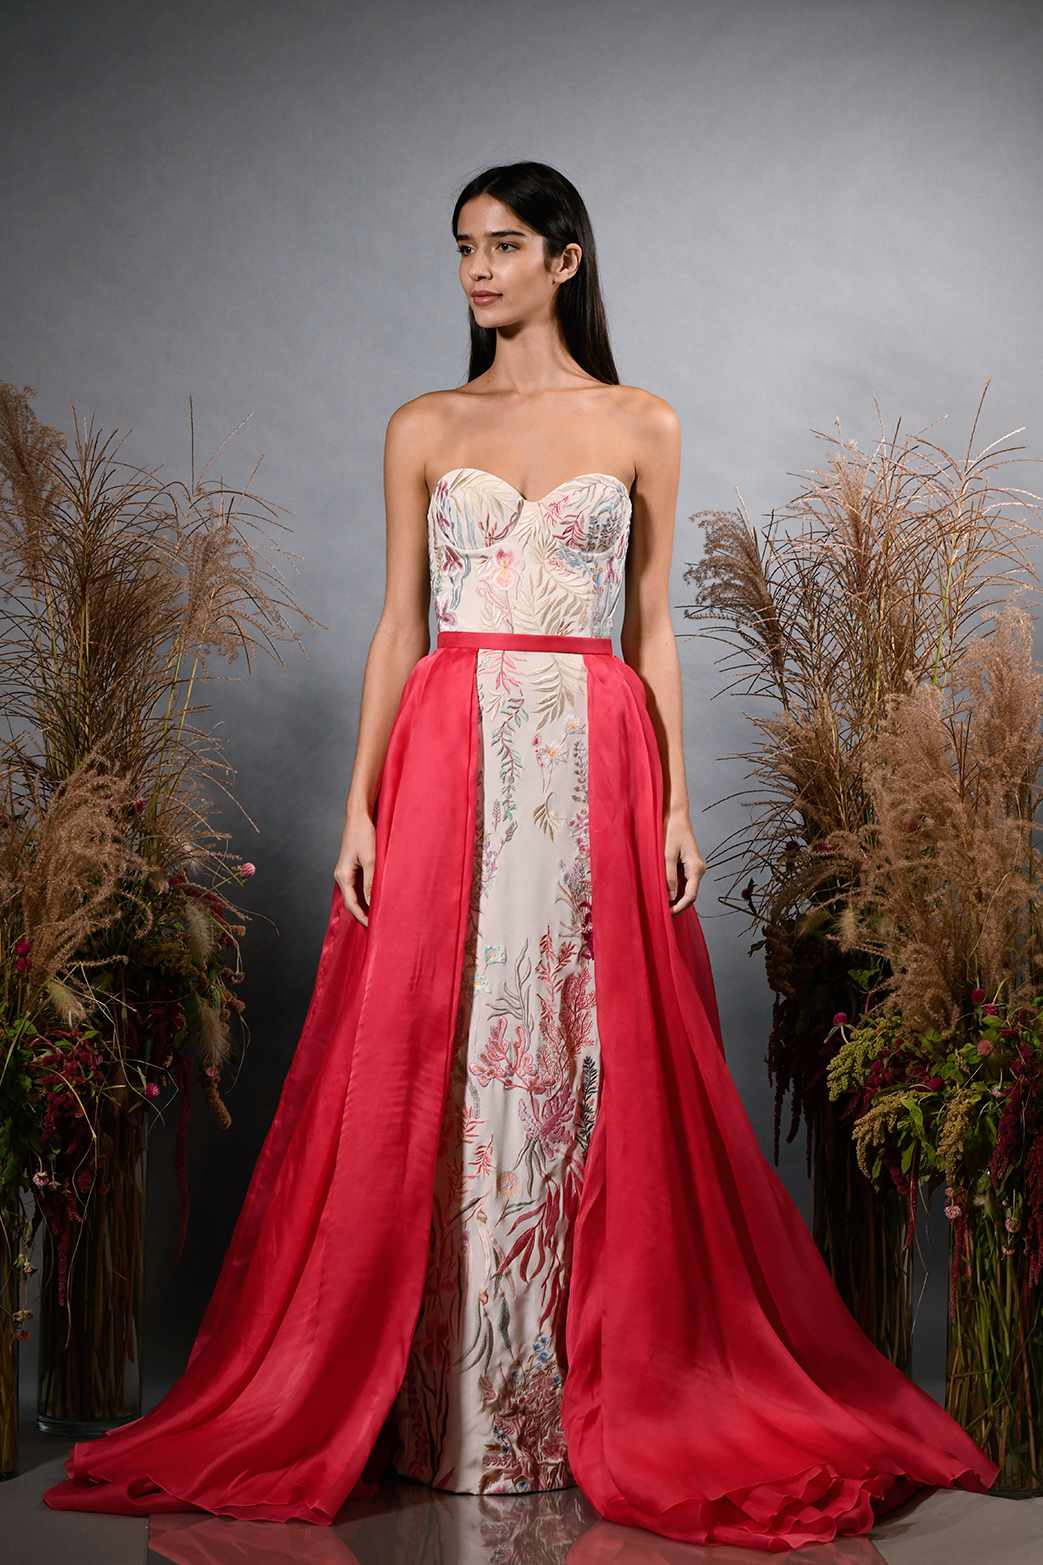 Model in strapless wedding dress with red overskirt